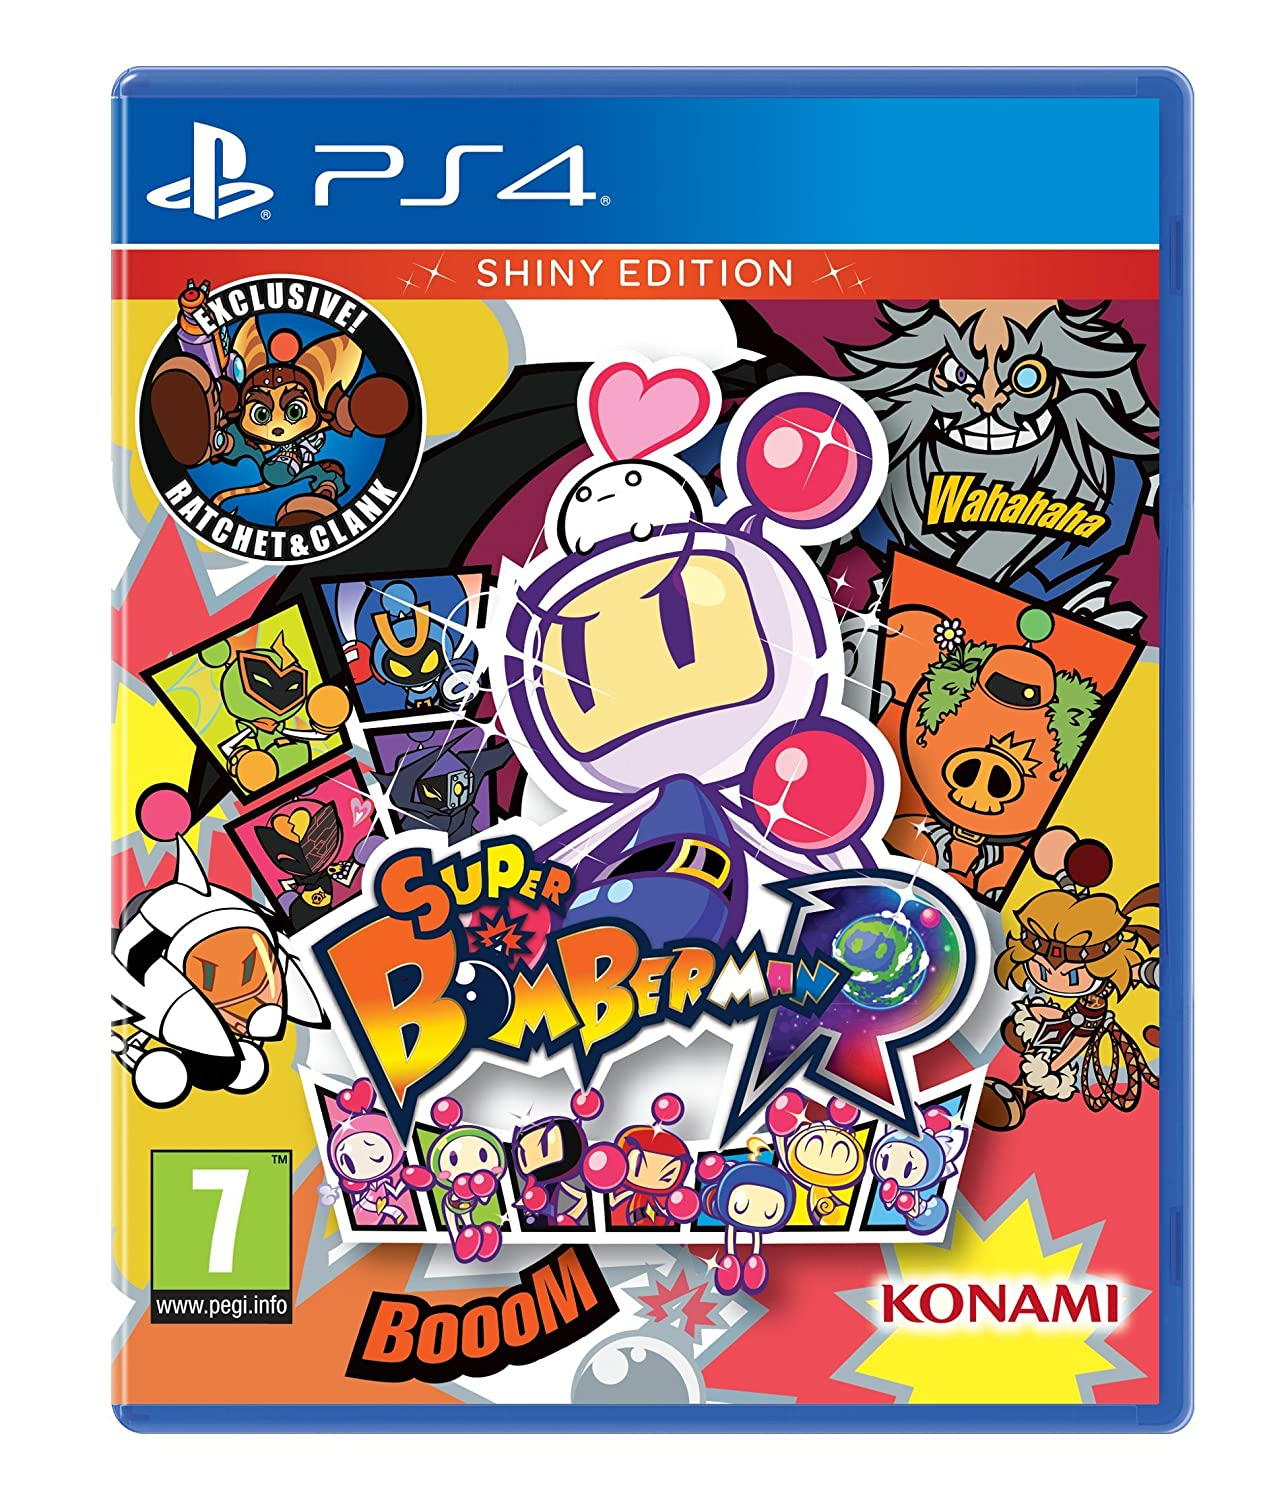 Super Bomberman R Shiny Edition Ps4 Pc Video Games Nintendo Switch Us